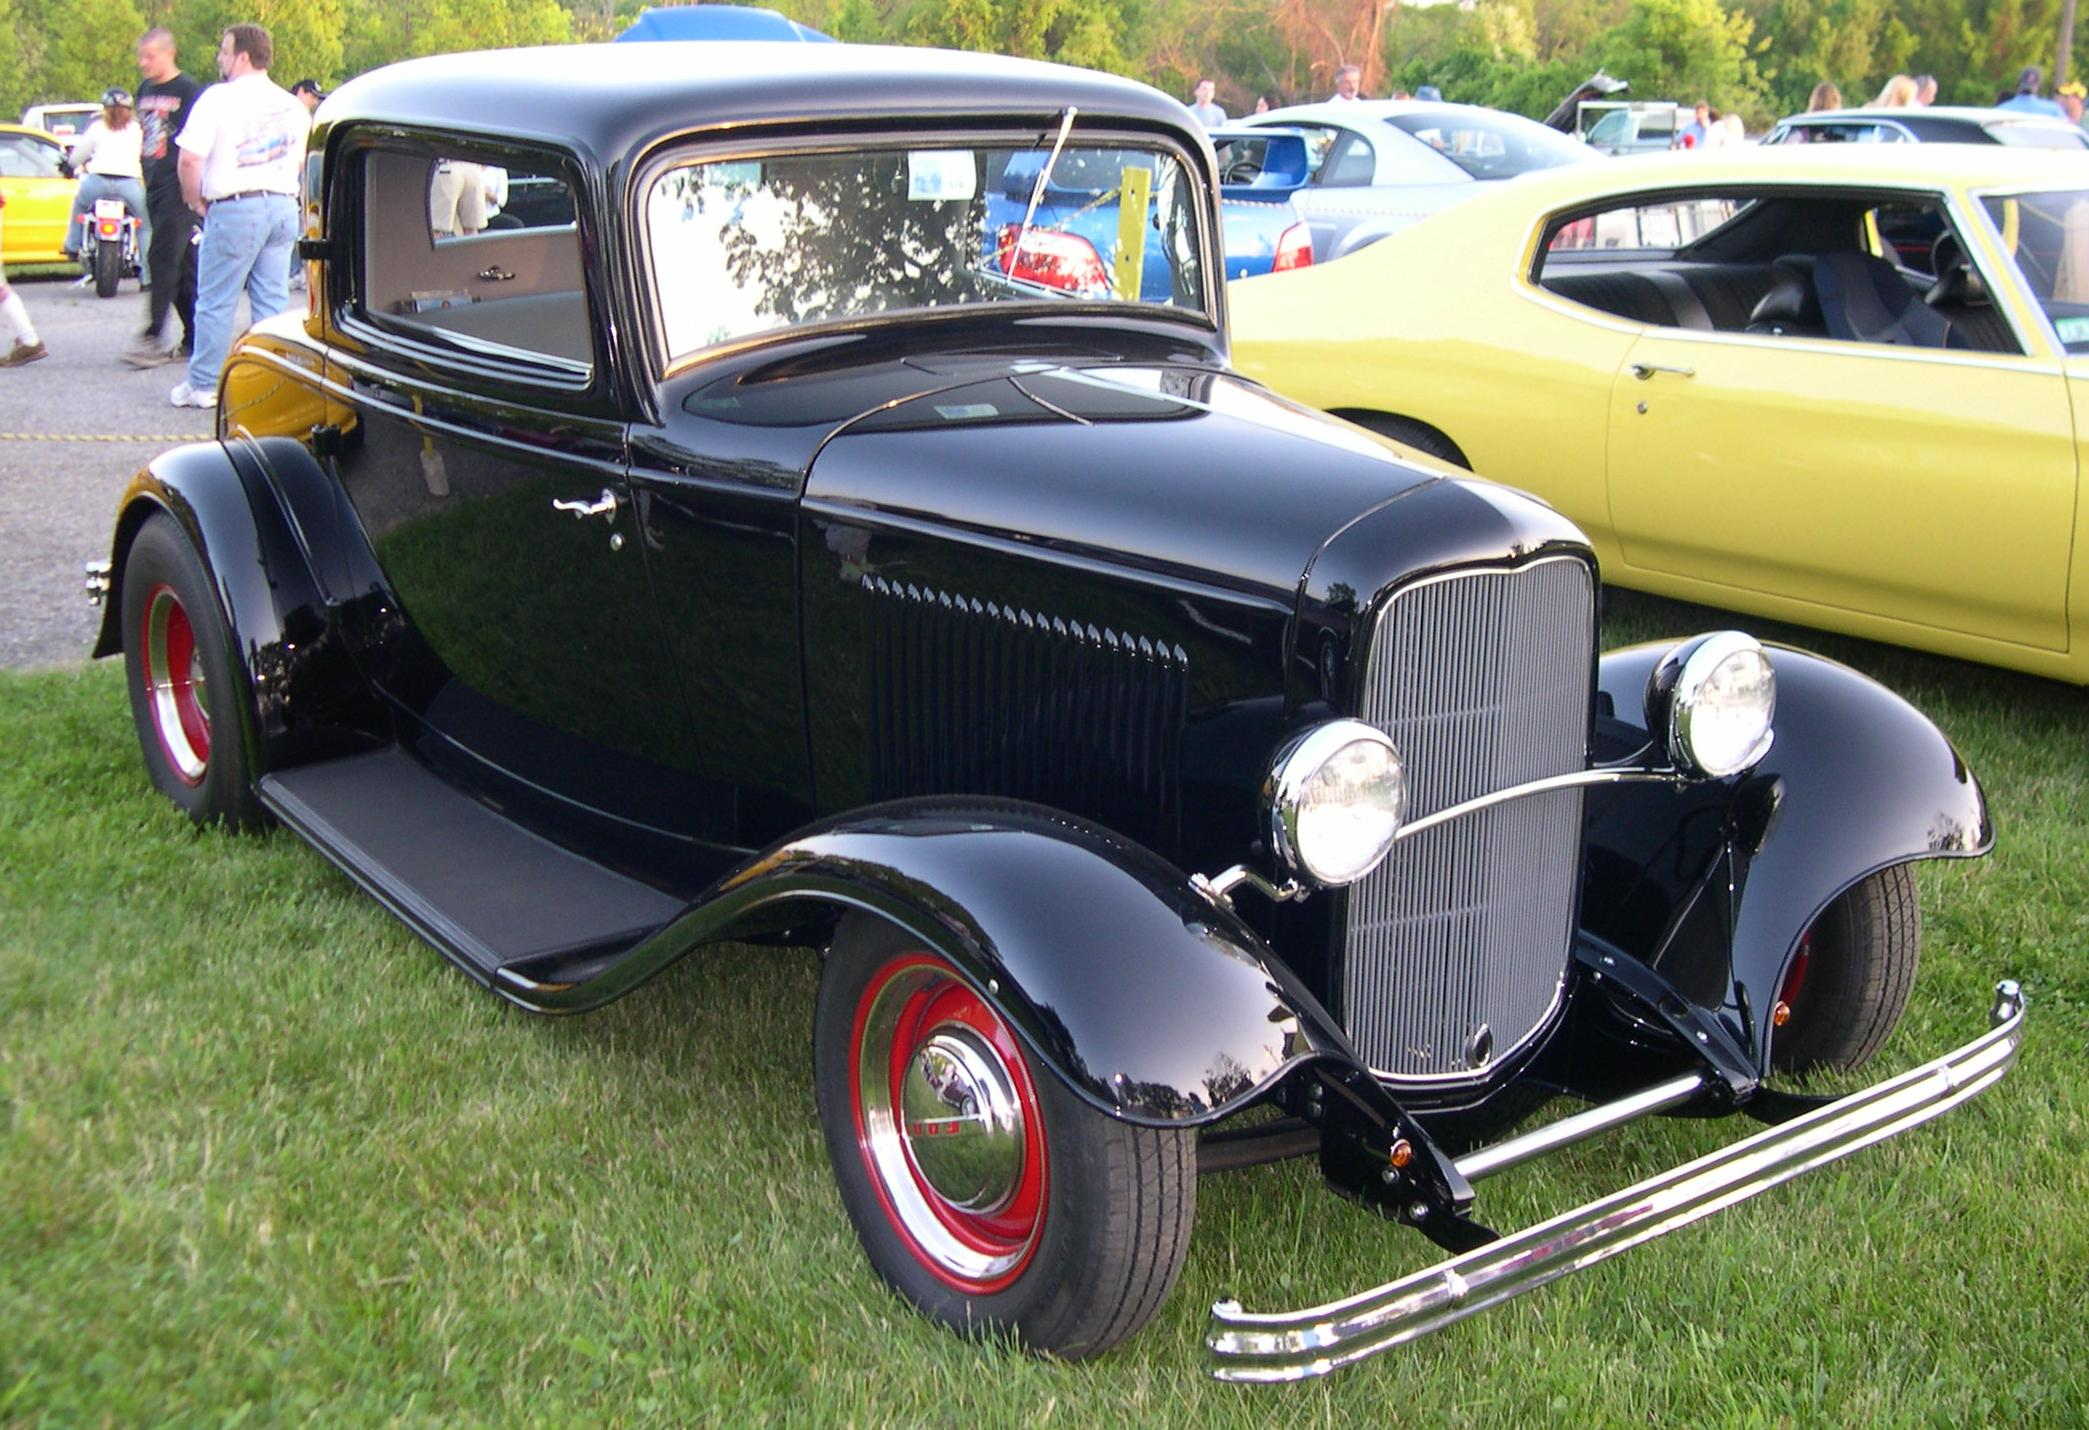 32 Ford Coupe Project Cars For Sale | Autos Post